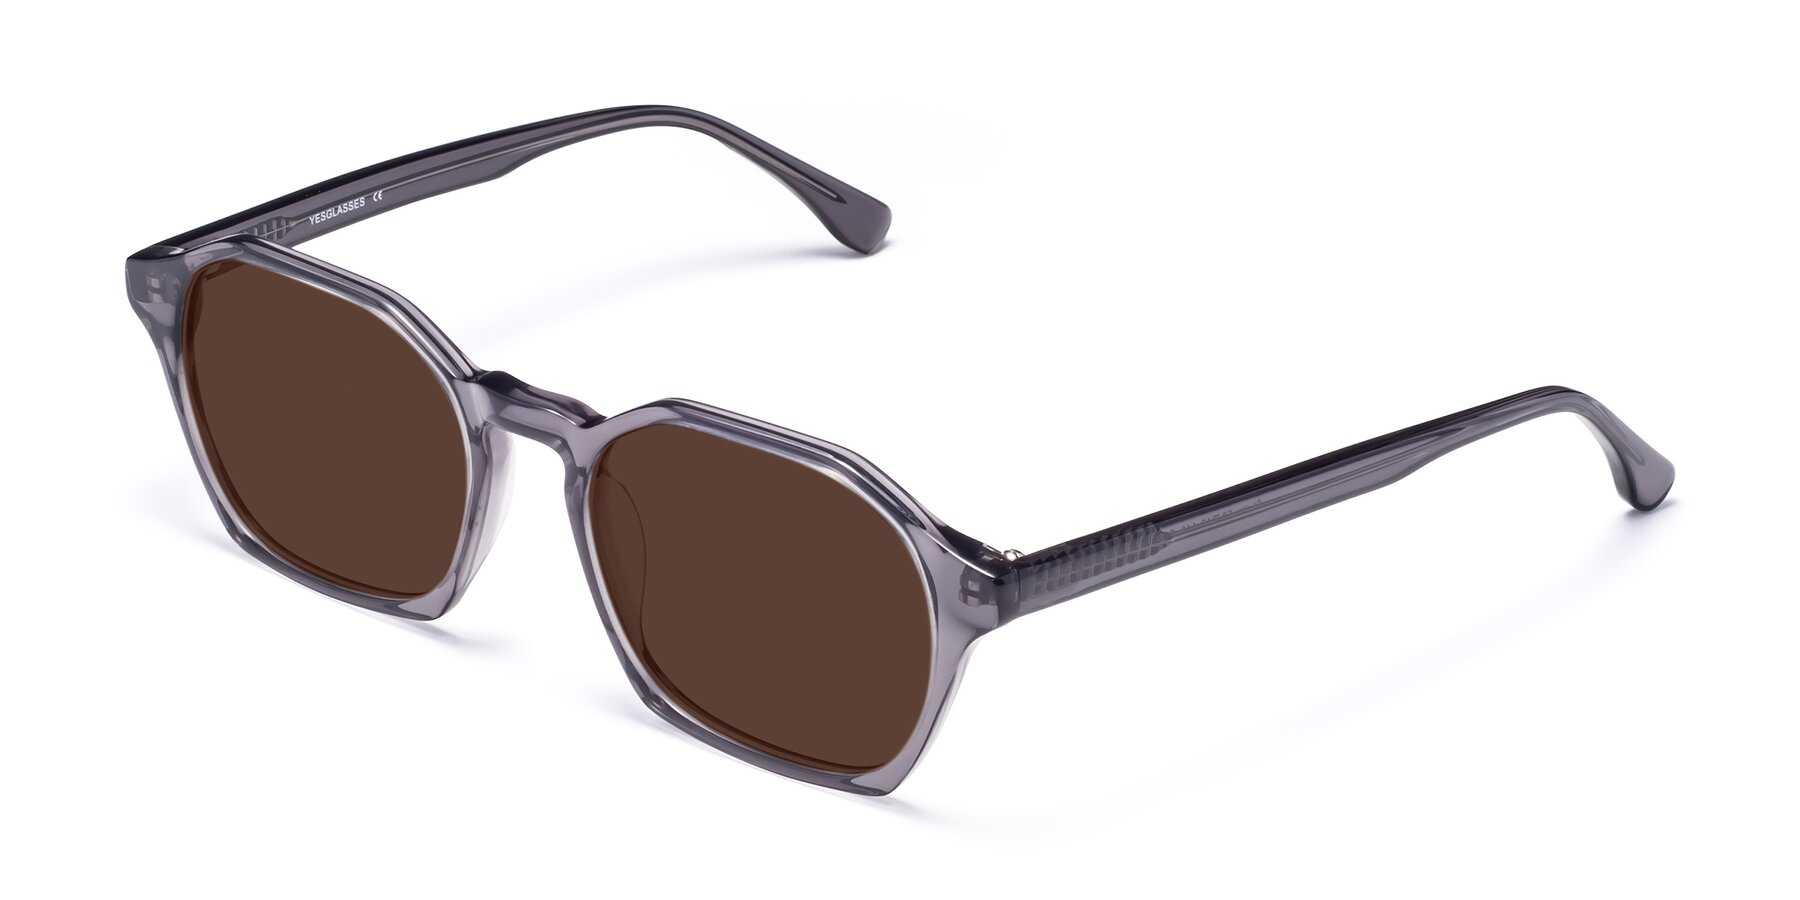 Angle of Stoltz in Translucent Gray with Brown Tinted Lenses